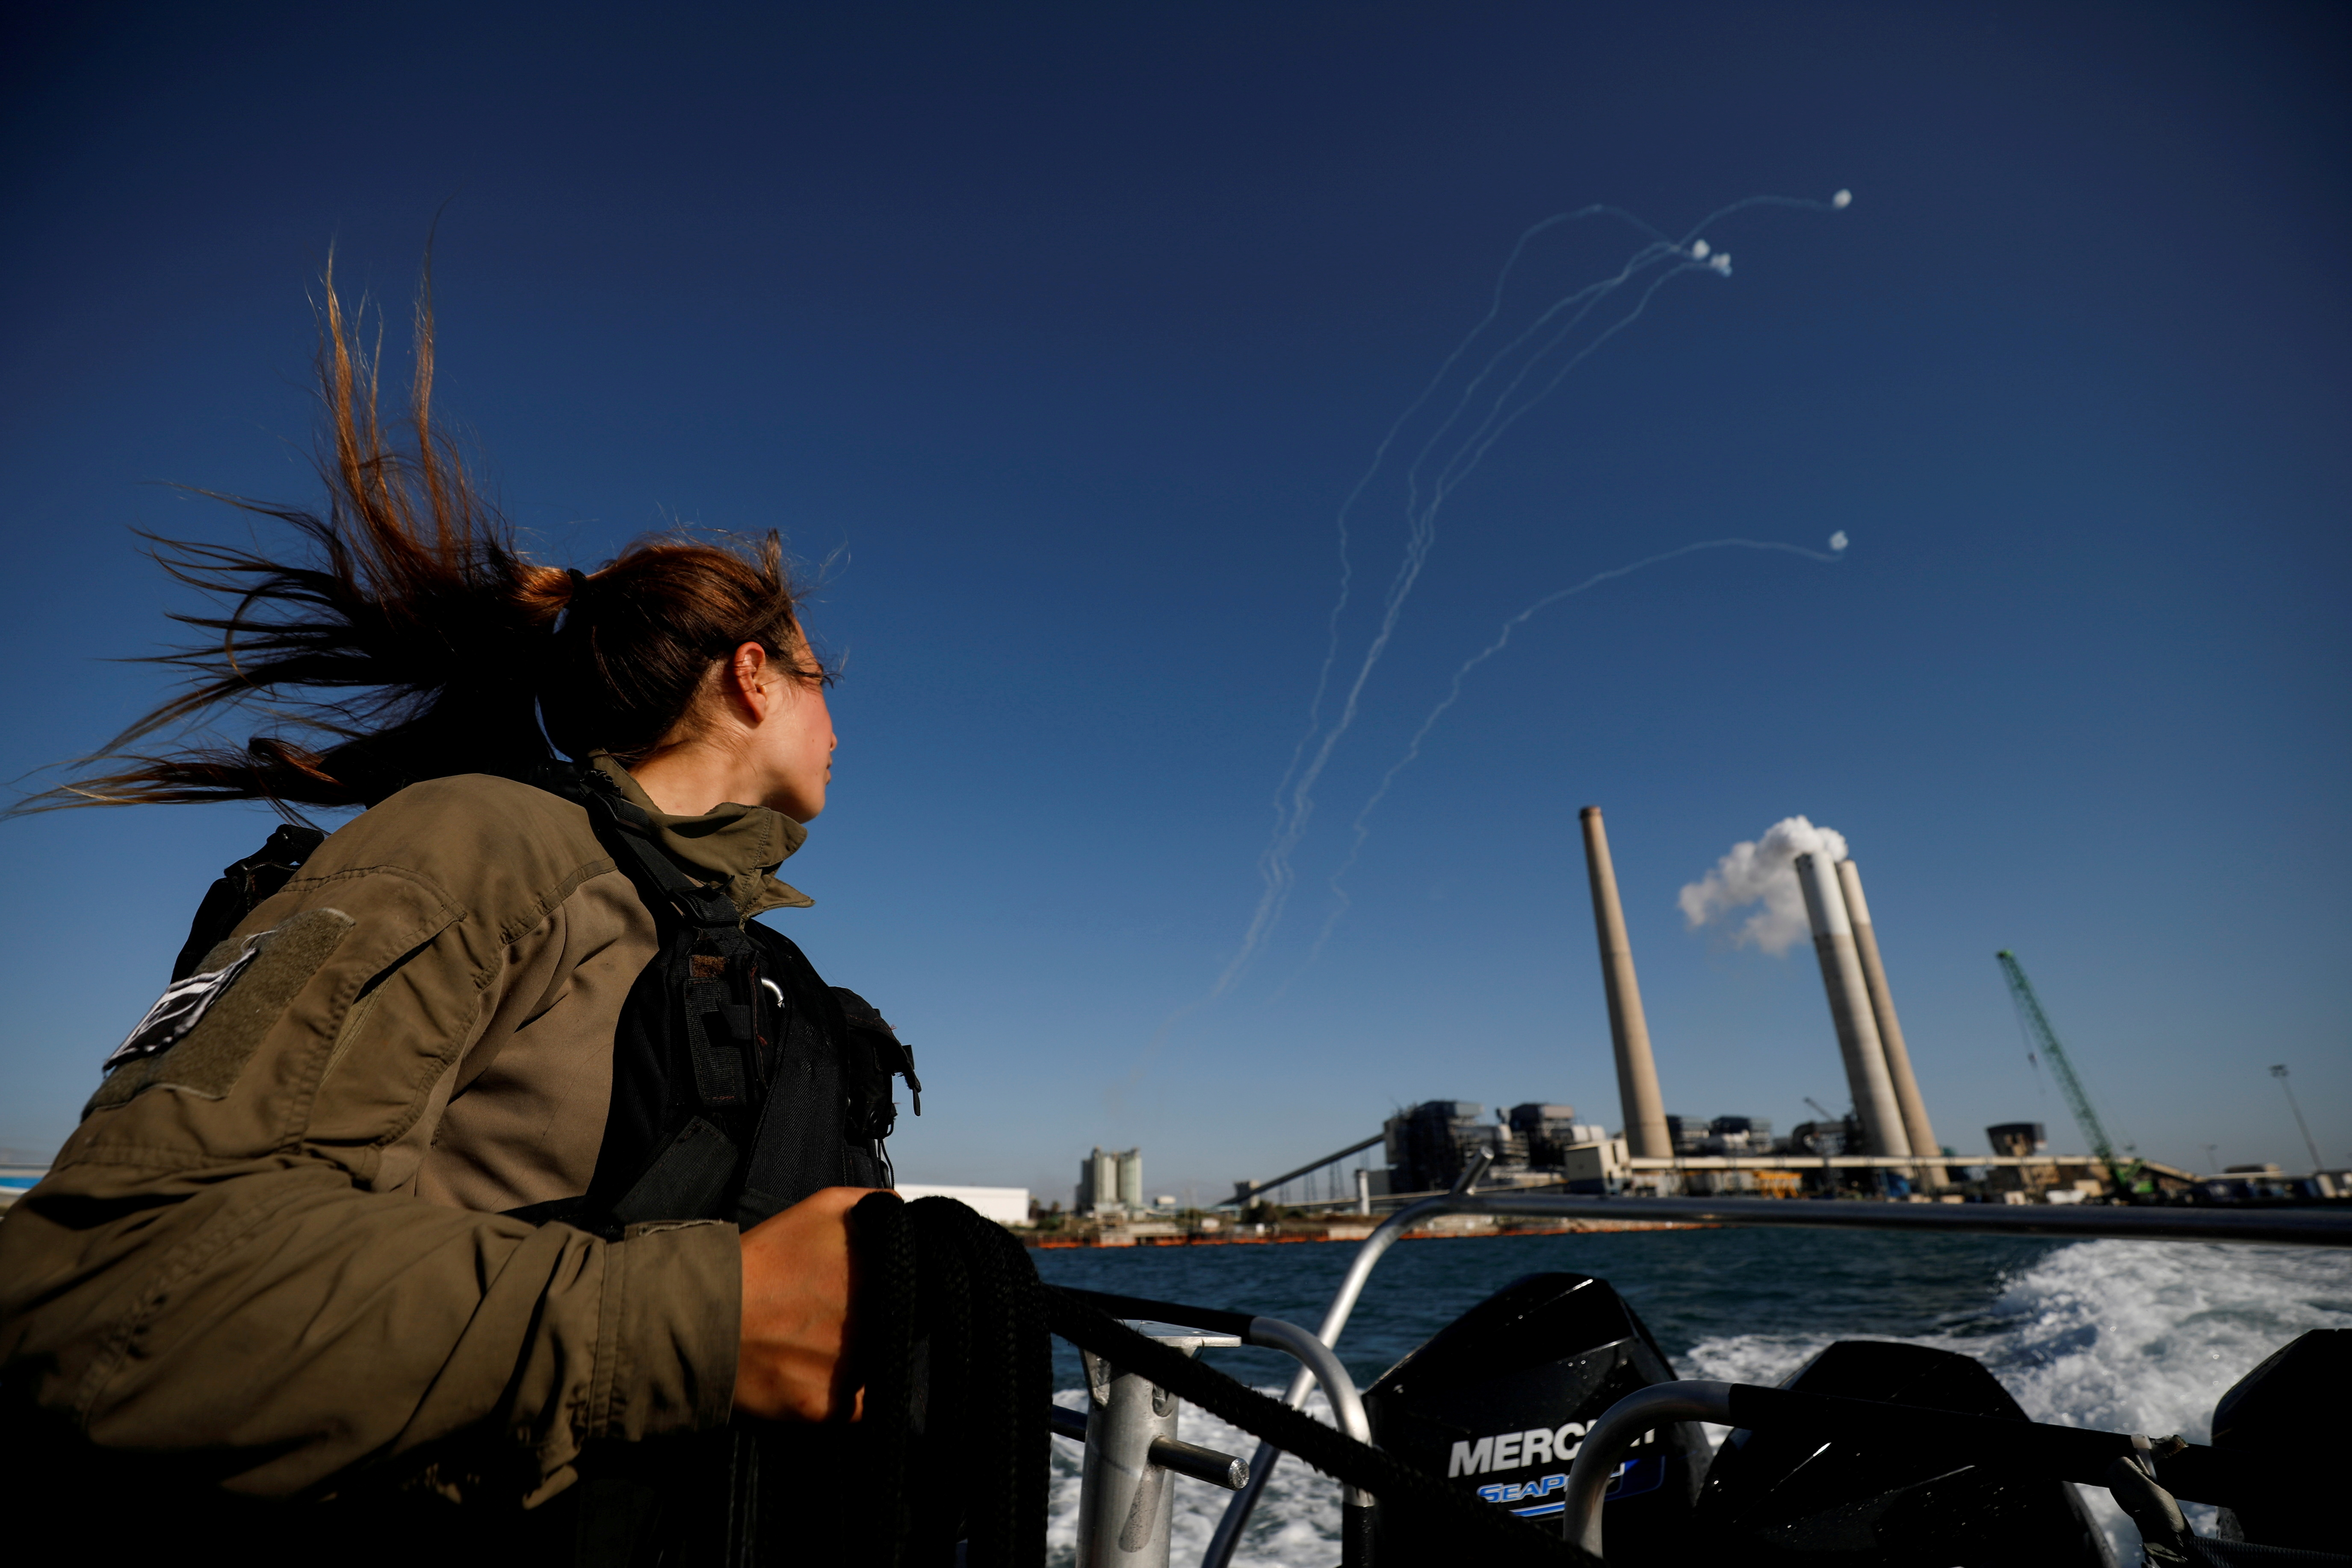 An Israeli soldier looks on as Israel's Iron Dome anti-missile system intercept rockets launched from the Gaza Strip towards Israel, as it seen from a naval boat patrolling the Mediterranean Sea off the southern Israeli coast as Israel-Gaza fighting rages on May 19, 2021 REUTERS/ Amir Cohen